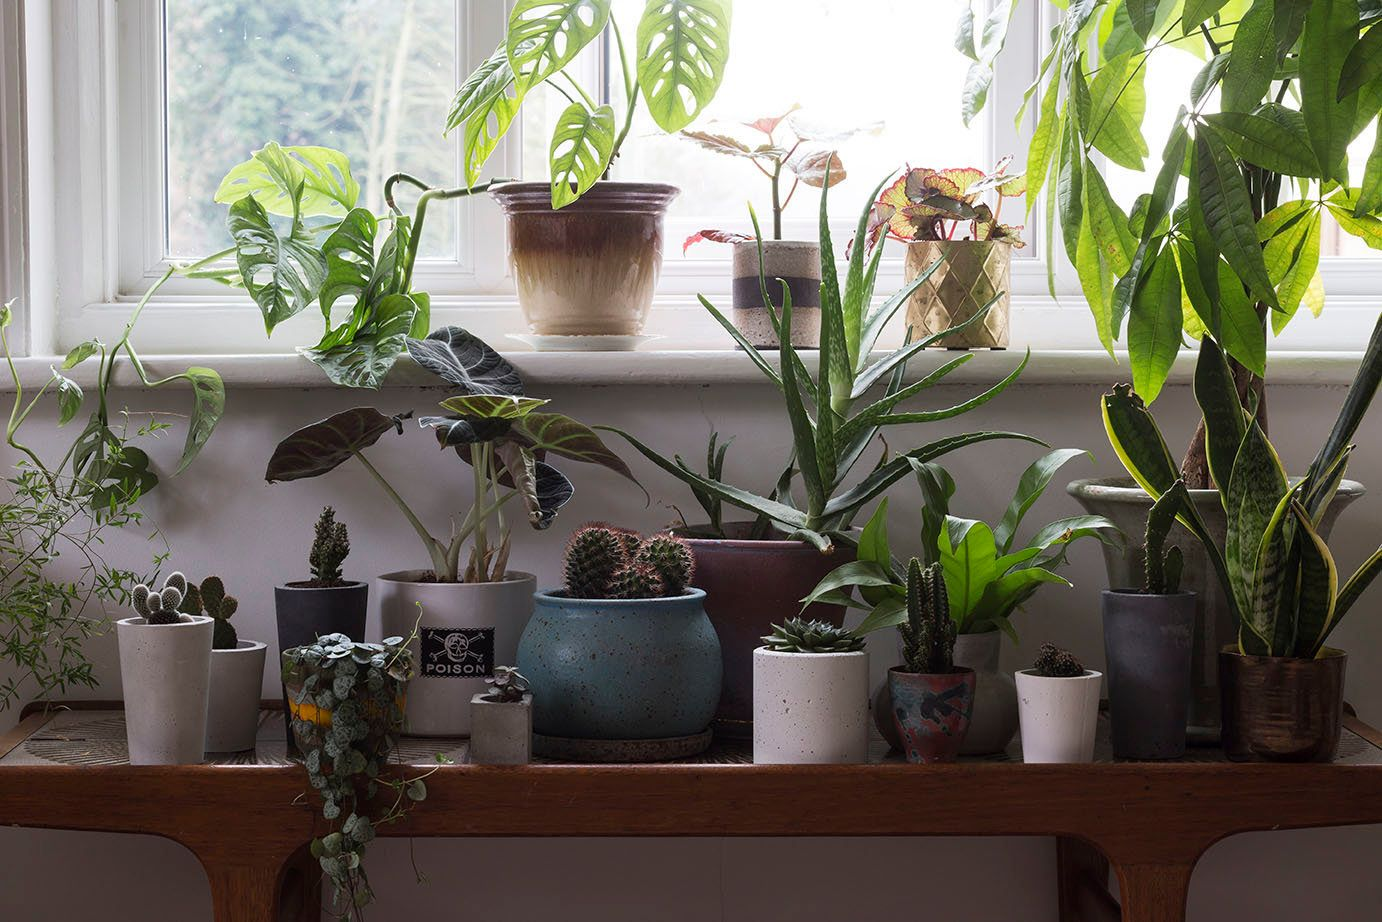 How To Turn Your Rented House Into An Urban Jungle